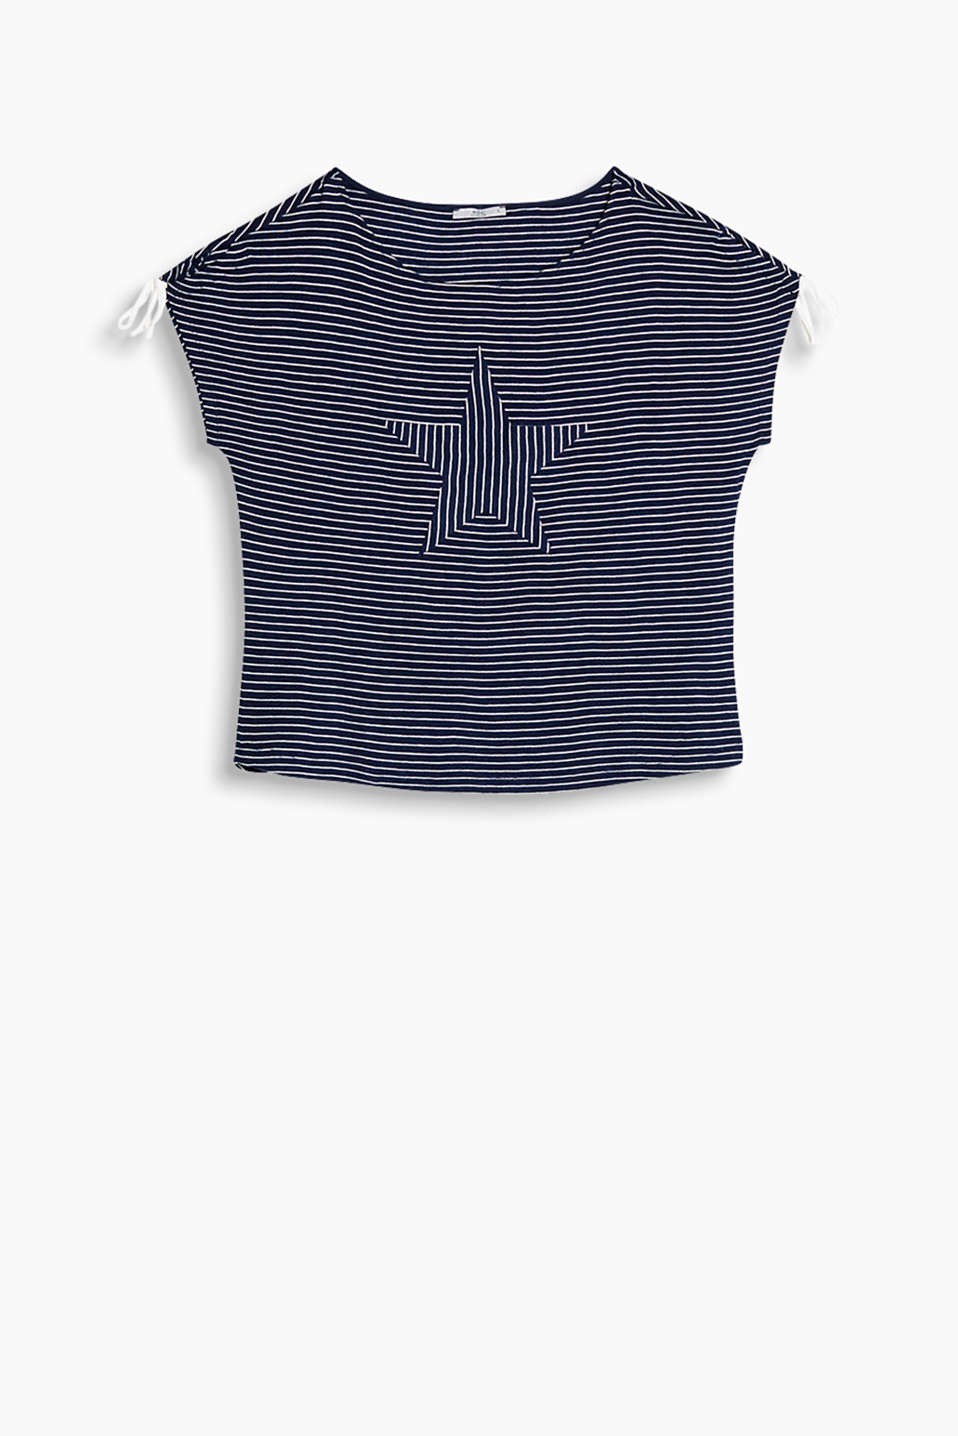 Striped T-shirt with gathered ties on the sleeves and an appliqué on the front